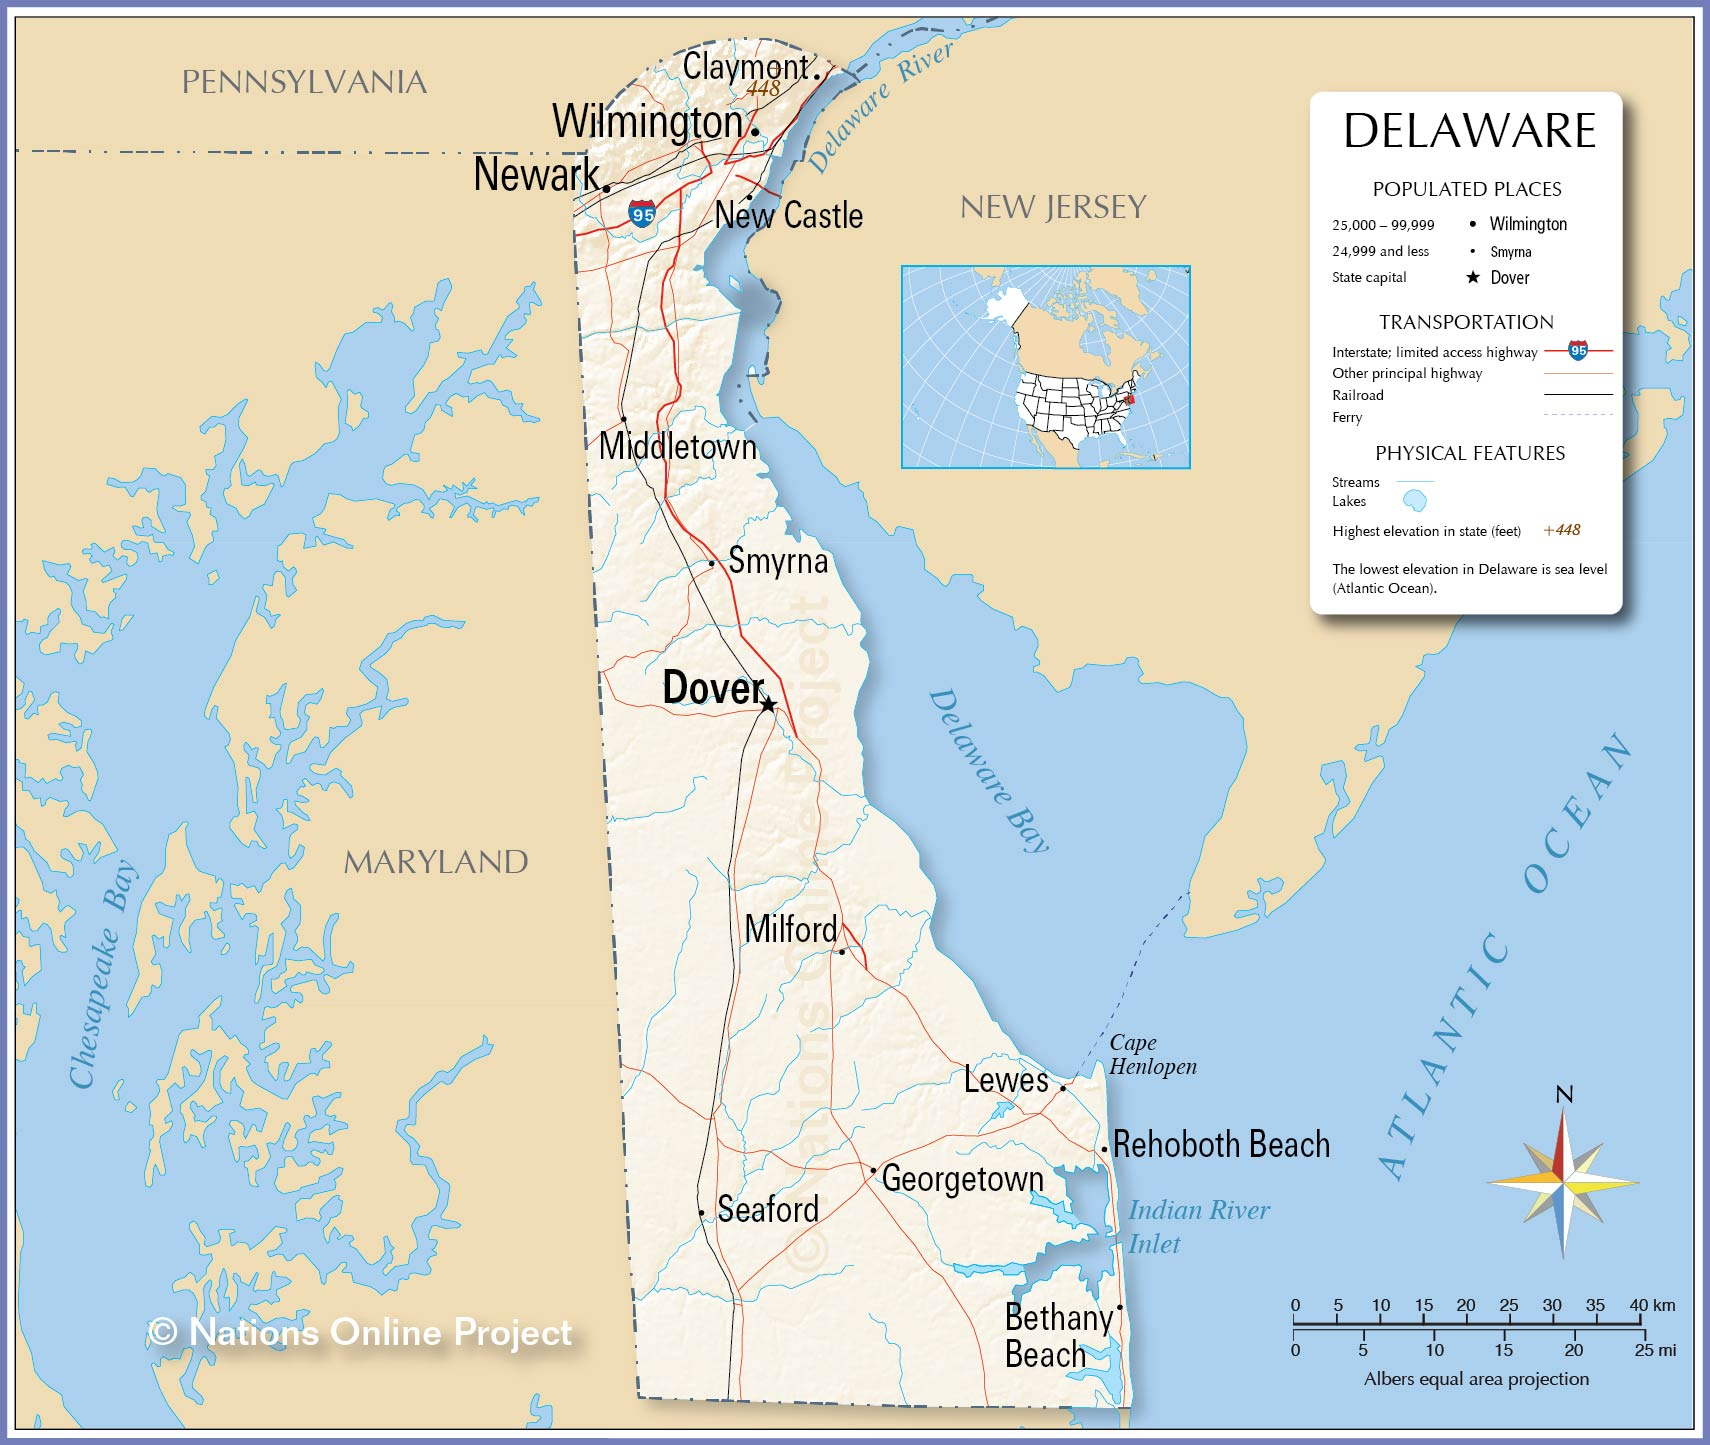 Reference Maps of Delaware, USA - Nations Online Project on